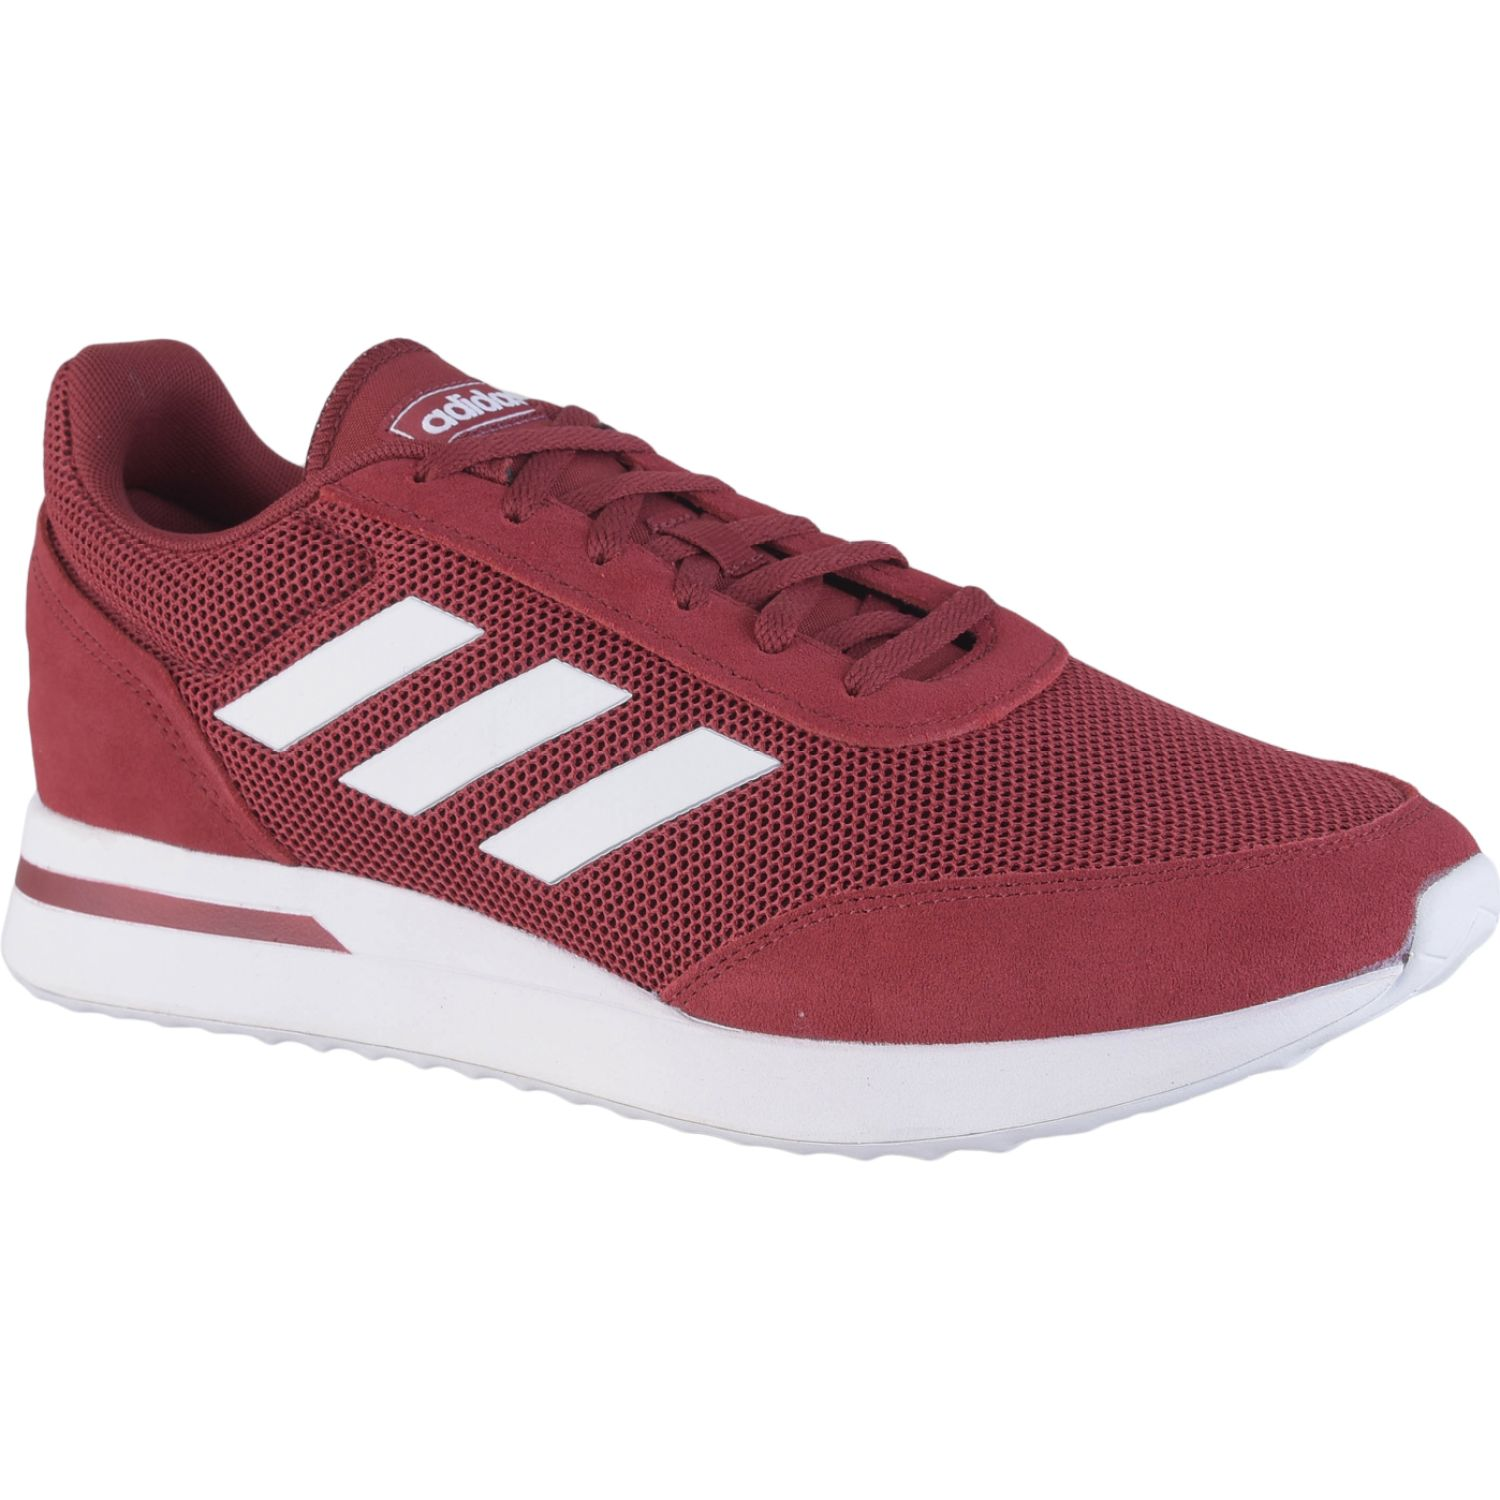 Adidas RUN70S Burgundy Running en pista